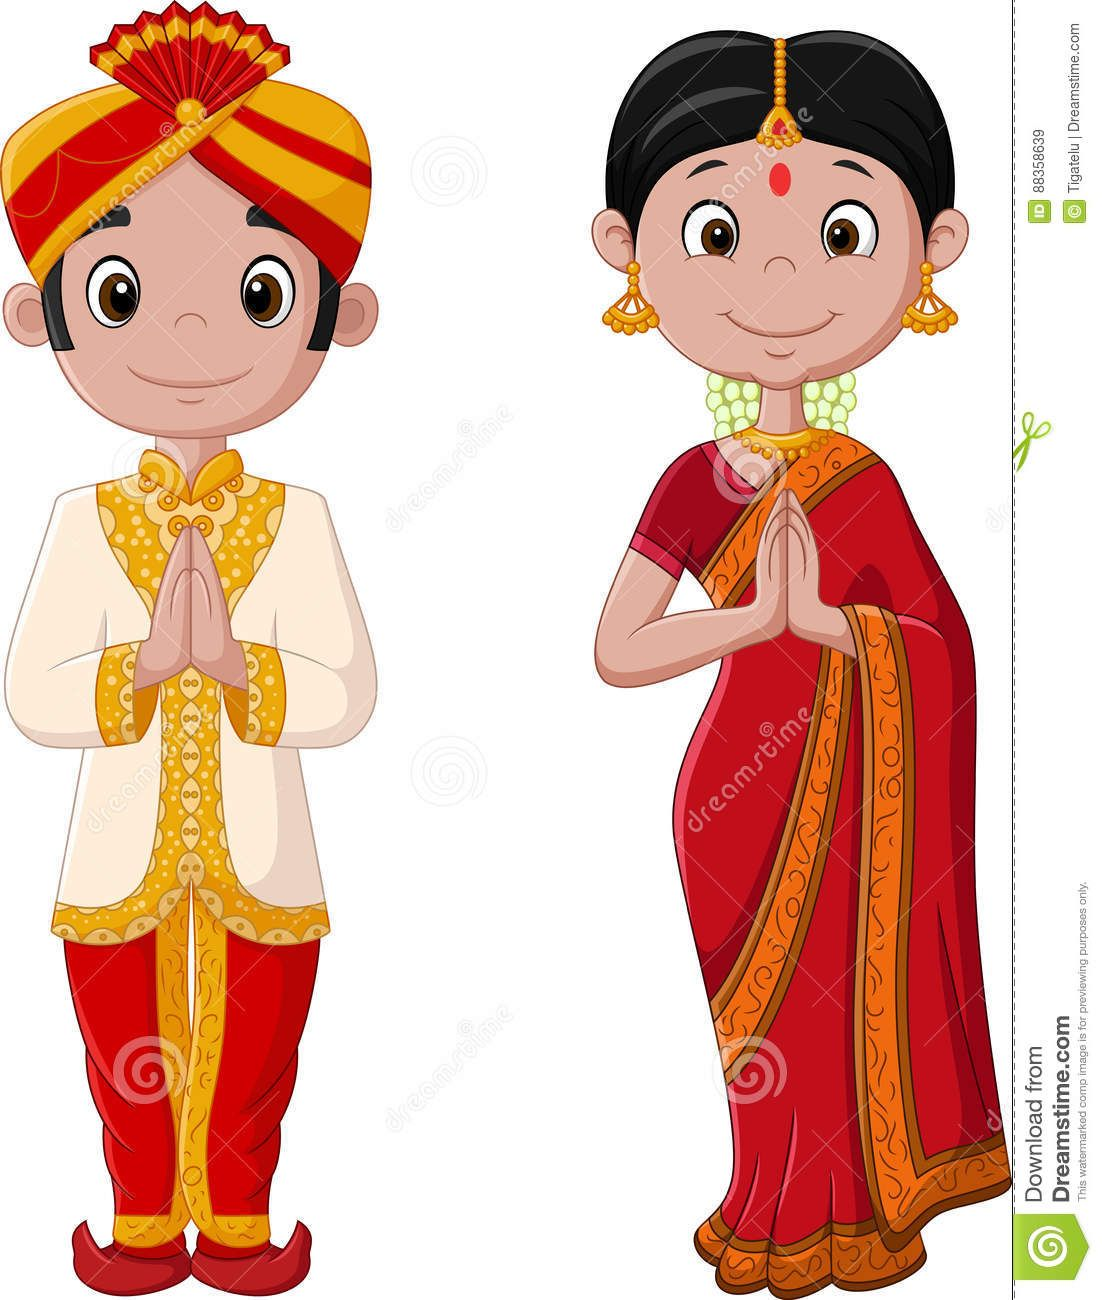 Iyengar traditional costume of tamil nadu clipart graphic black and white download Cartoon Indian Couple Wearing Traditional Costume - Download From ... graphic black and white download